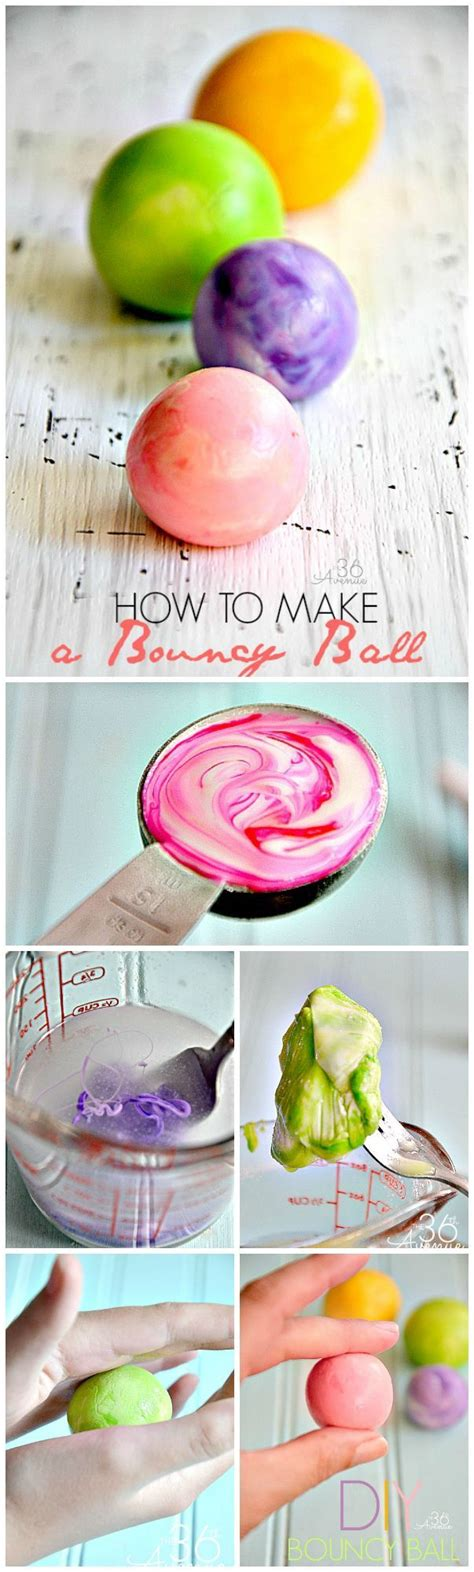 summer diy projects for college students 197 best images about entrepreneur day ideas for students on popsicle stick crafts